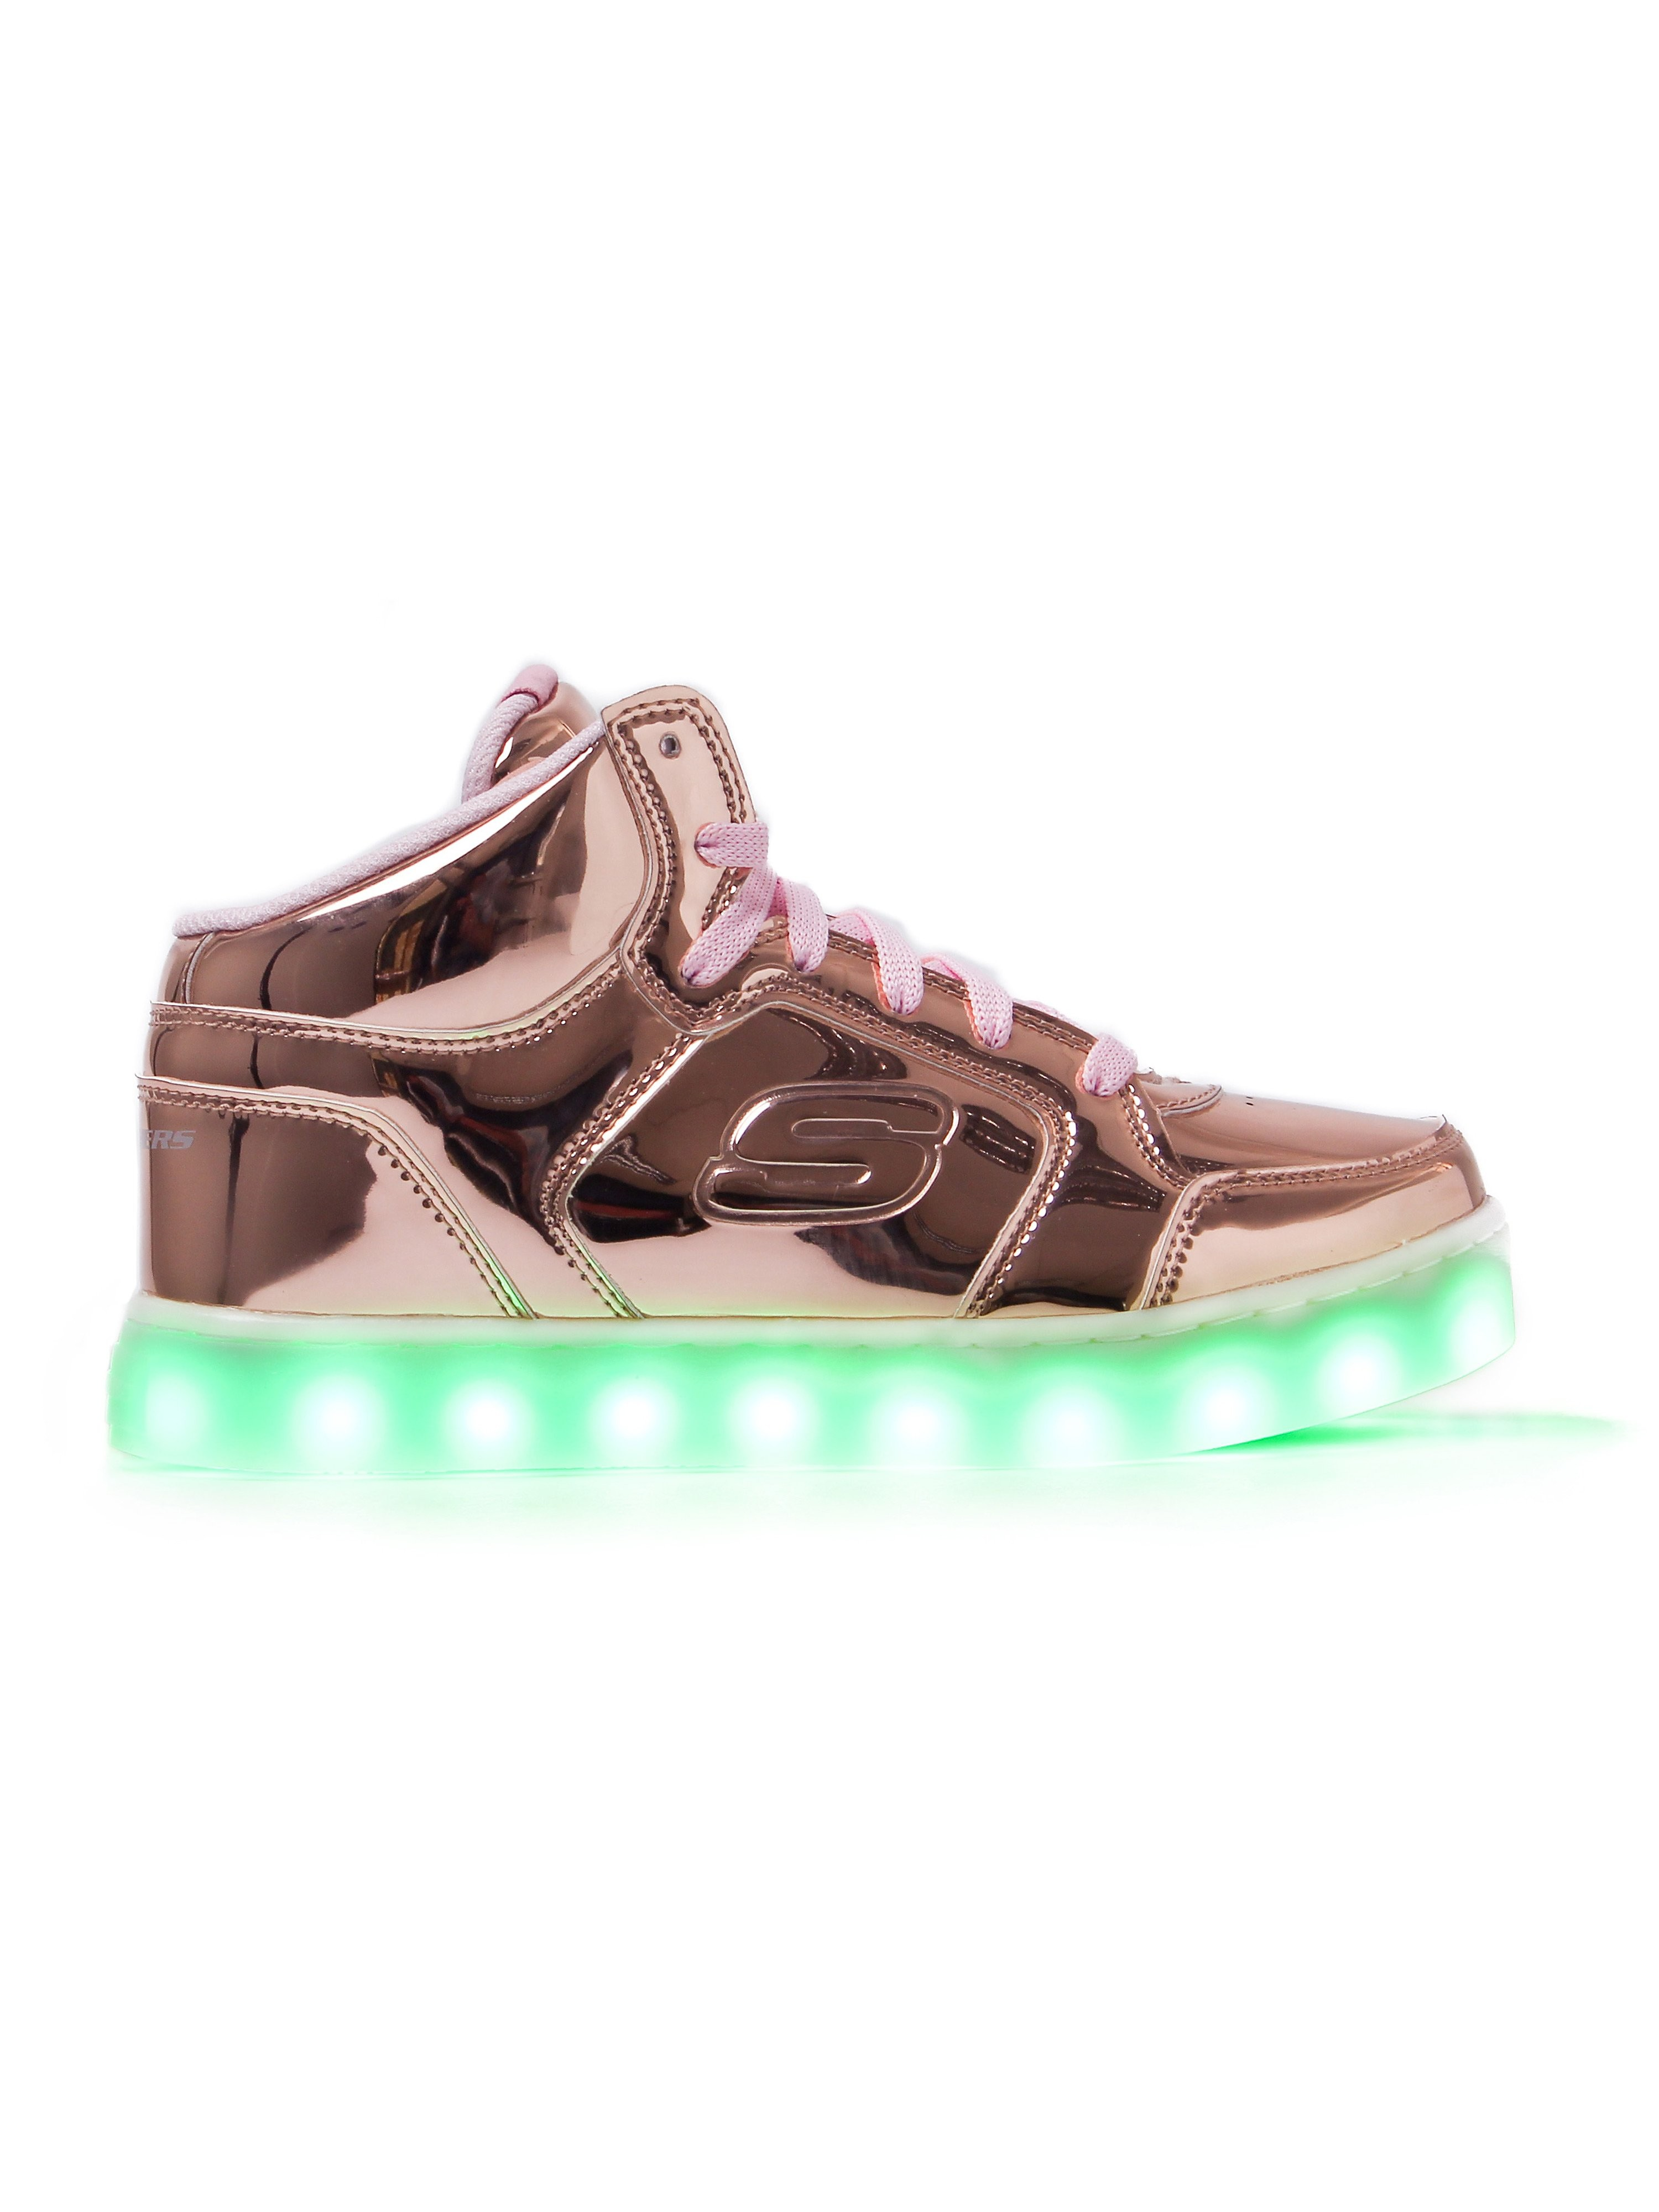 Skechers Kids Energy Lights Dance N Dazzle Trainers - Rose Gold